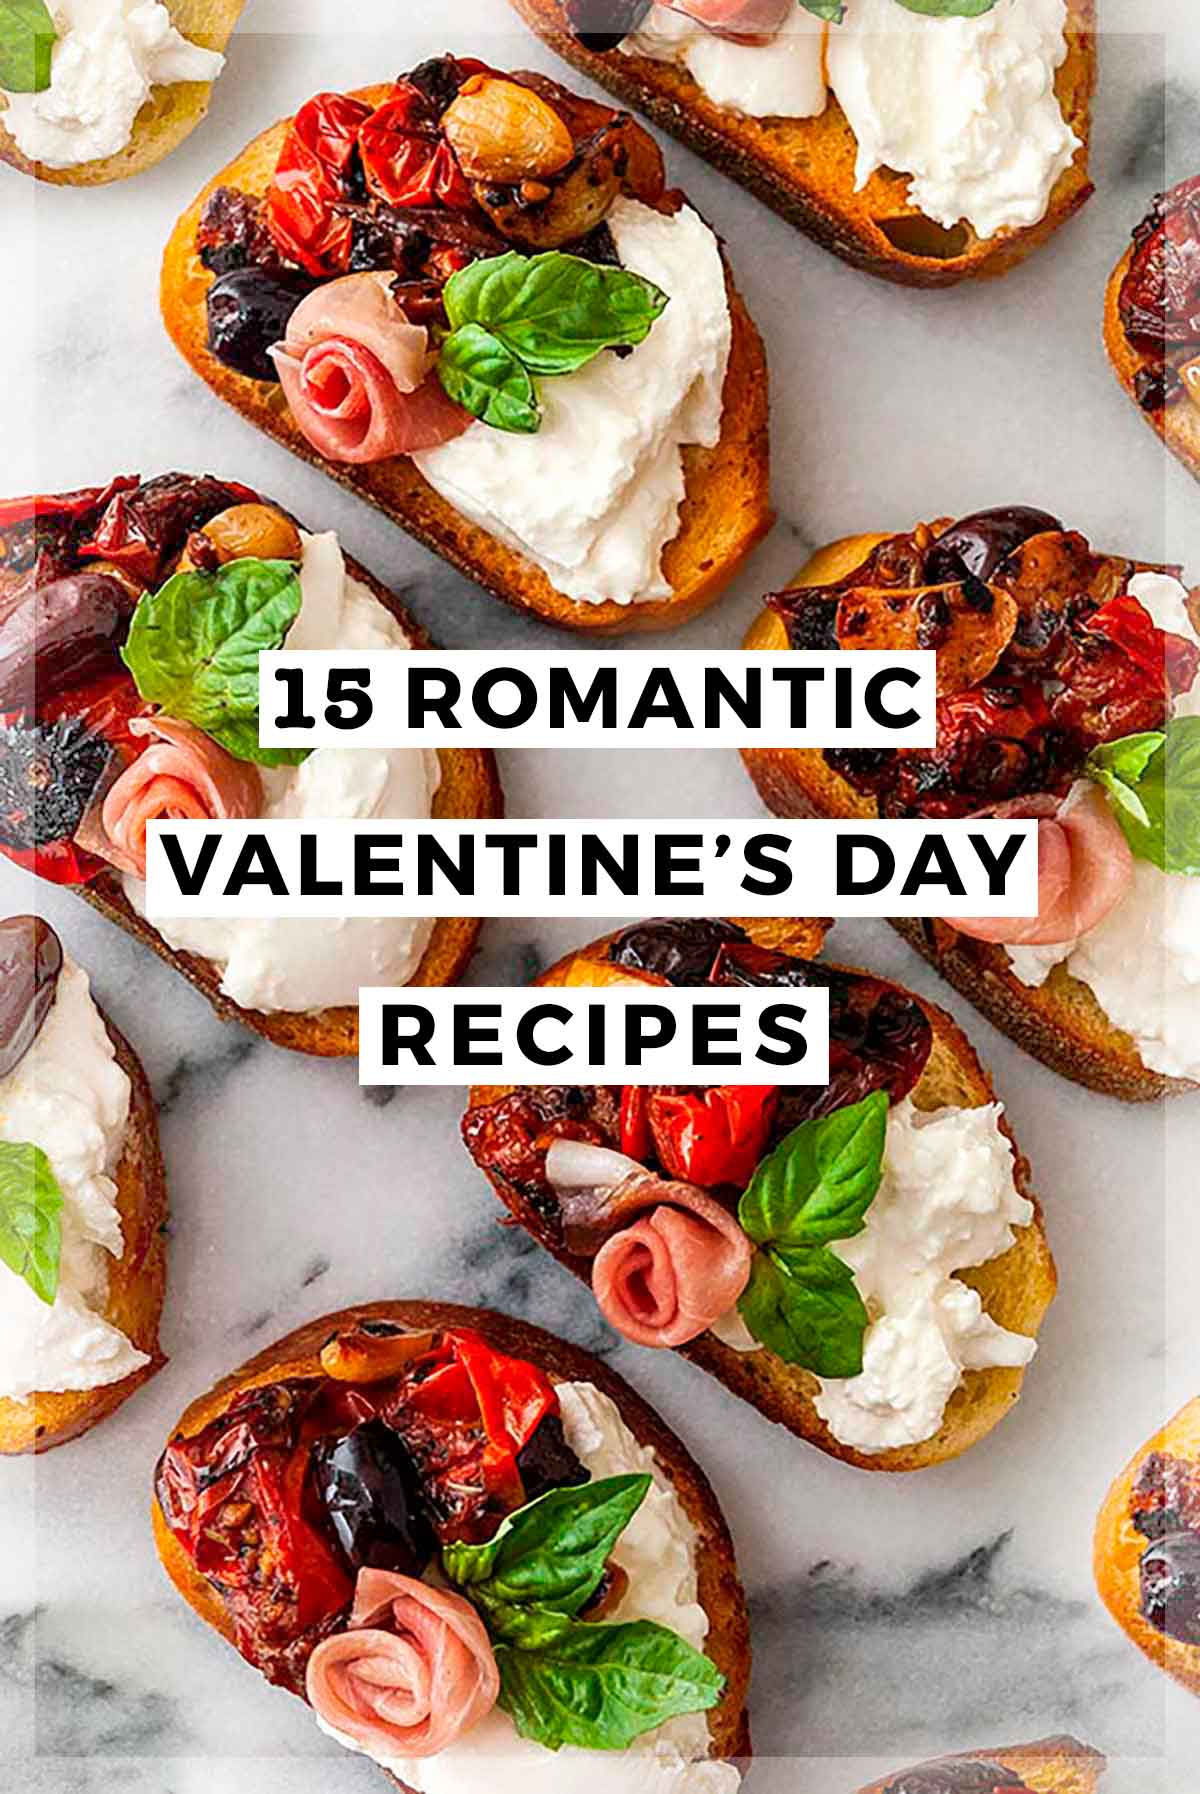 """Ornate appetizers on marble with a title that says """"15 Romantic Valentine's Day Recipes."""""""